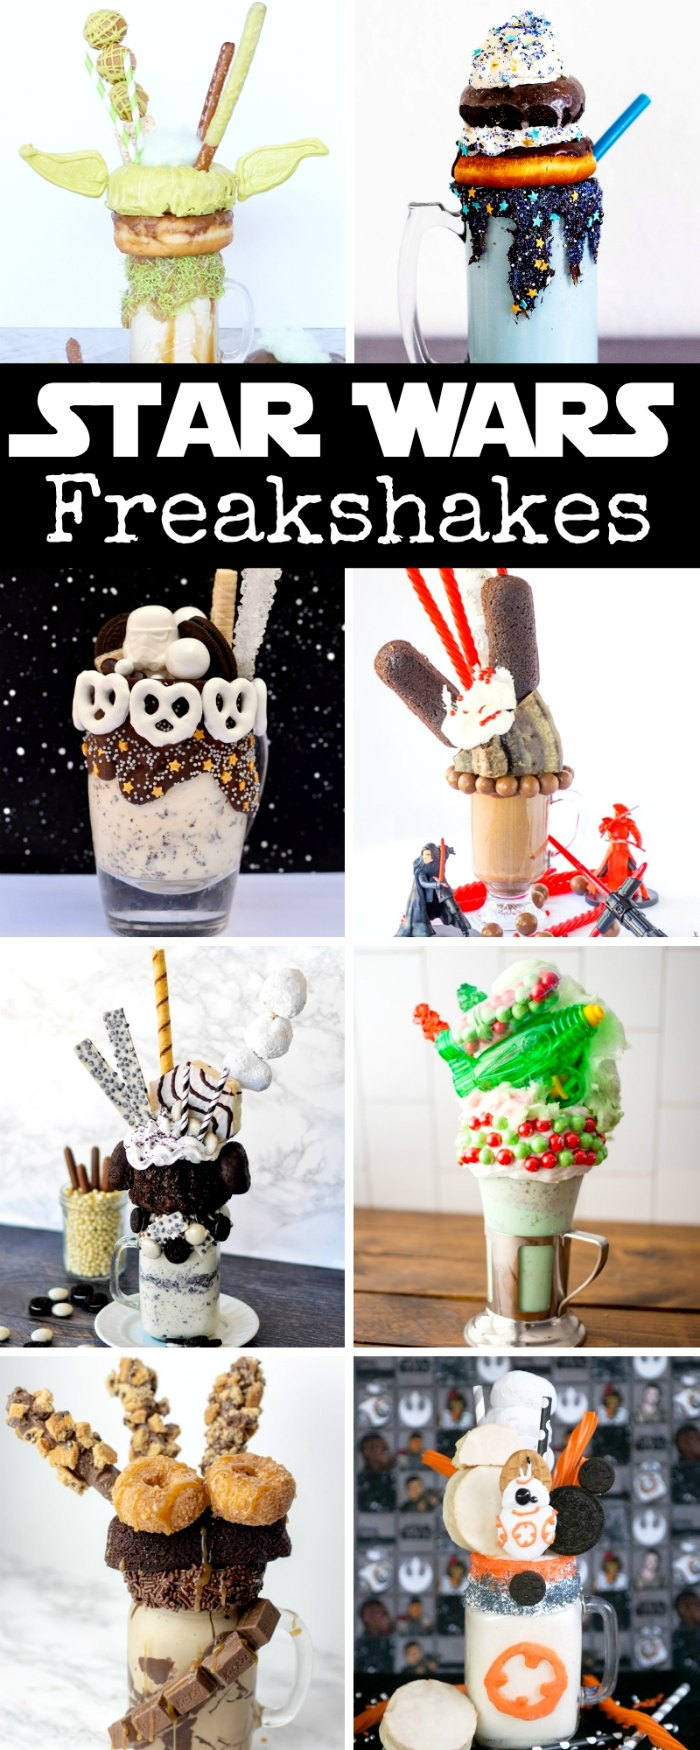 Star Wars Freakshakes